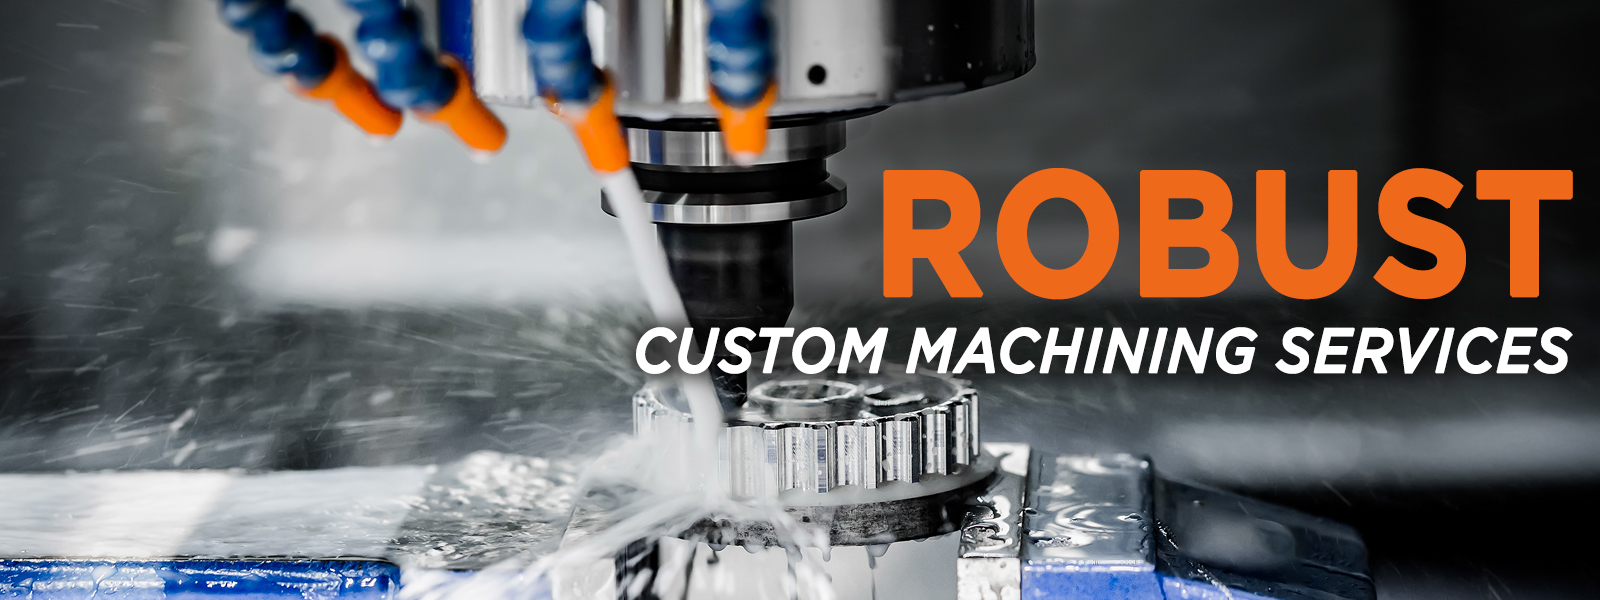 Robust Custom Machining Services